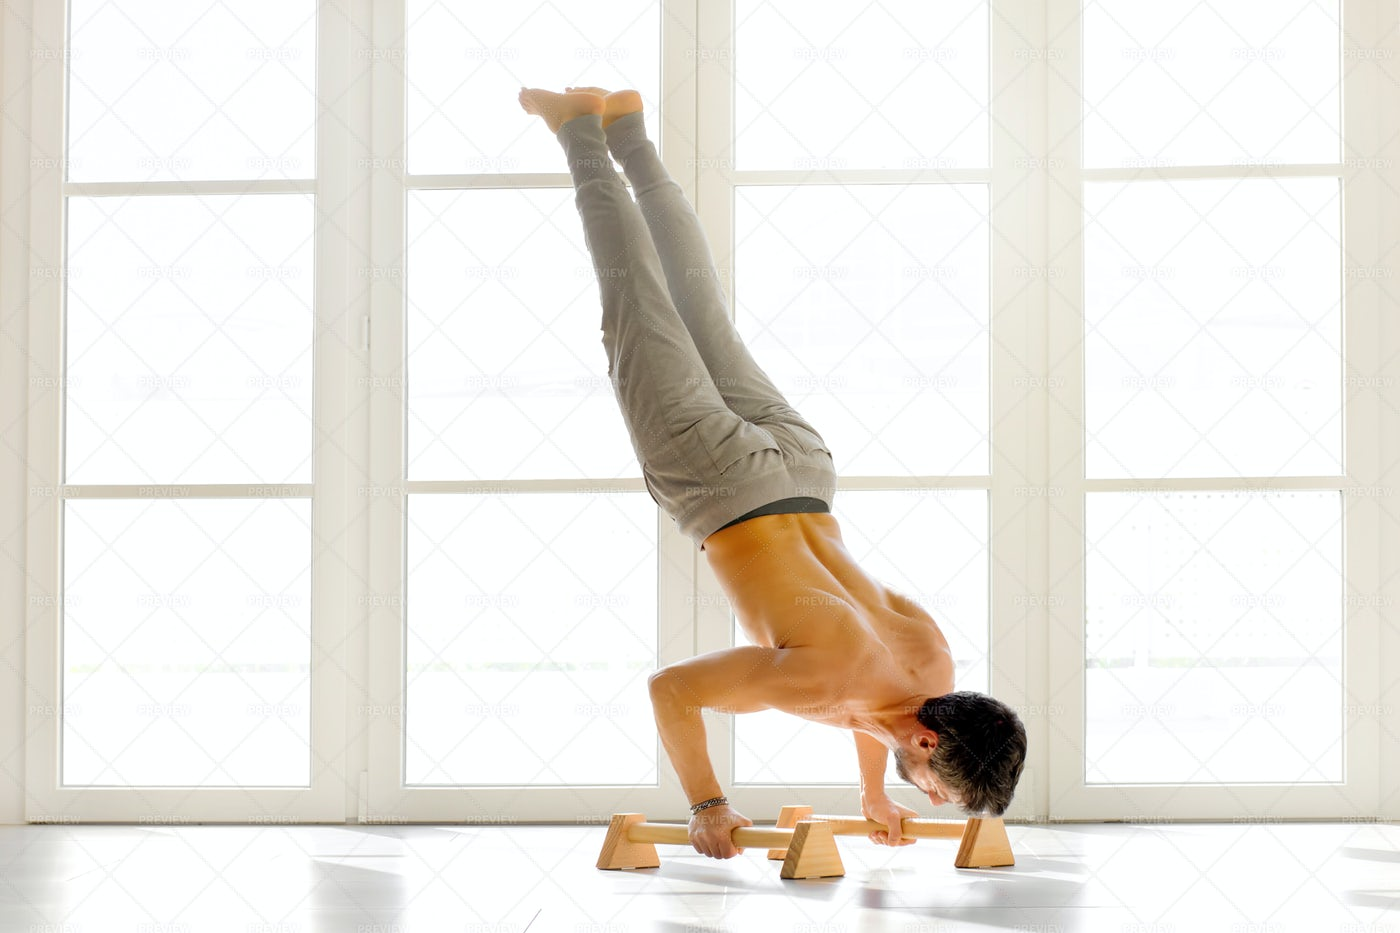 Handstand Push Ups On Bars: Stock Photos